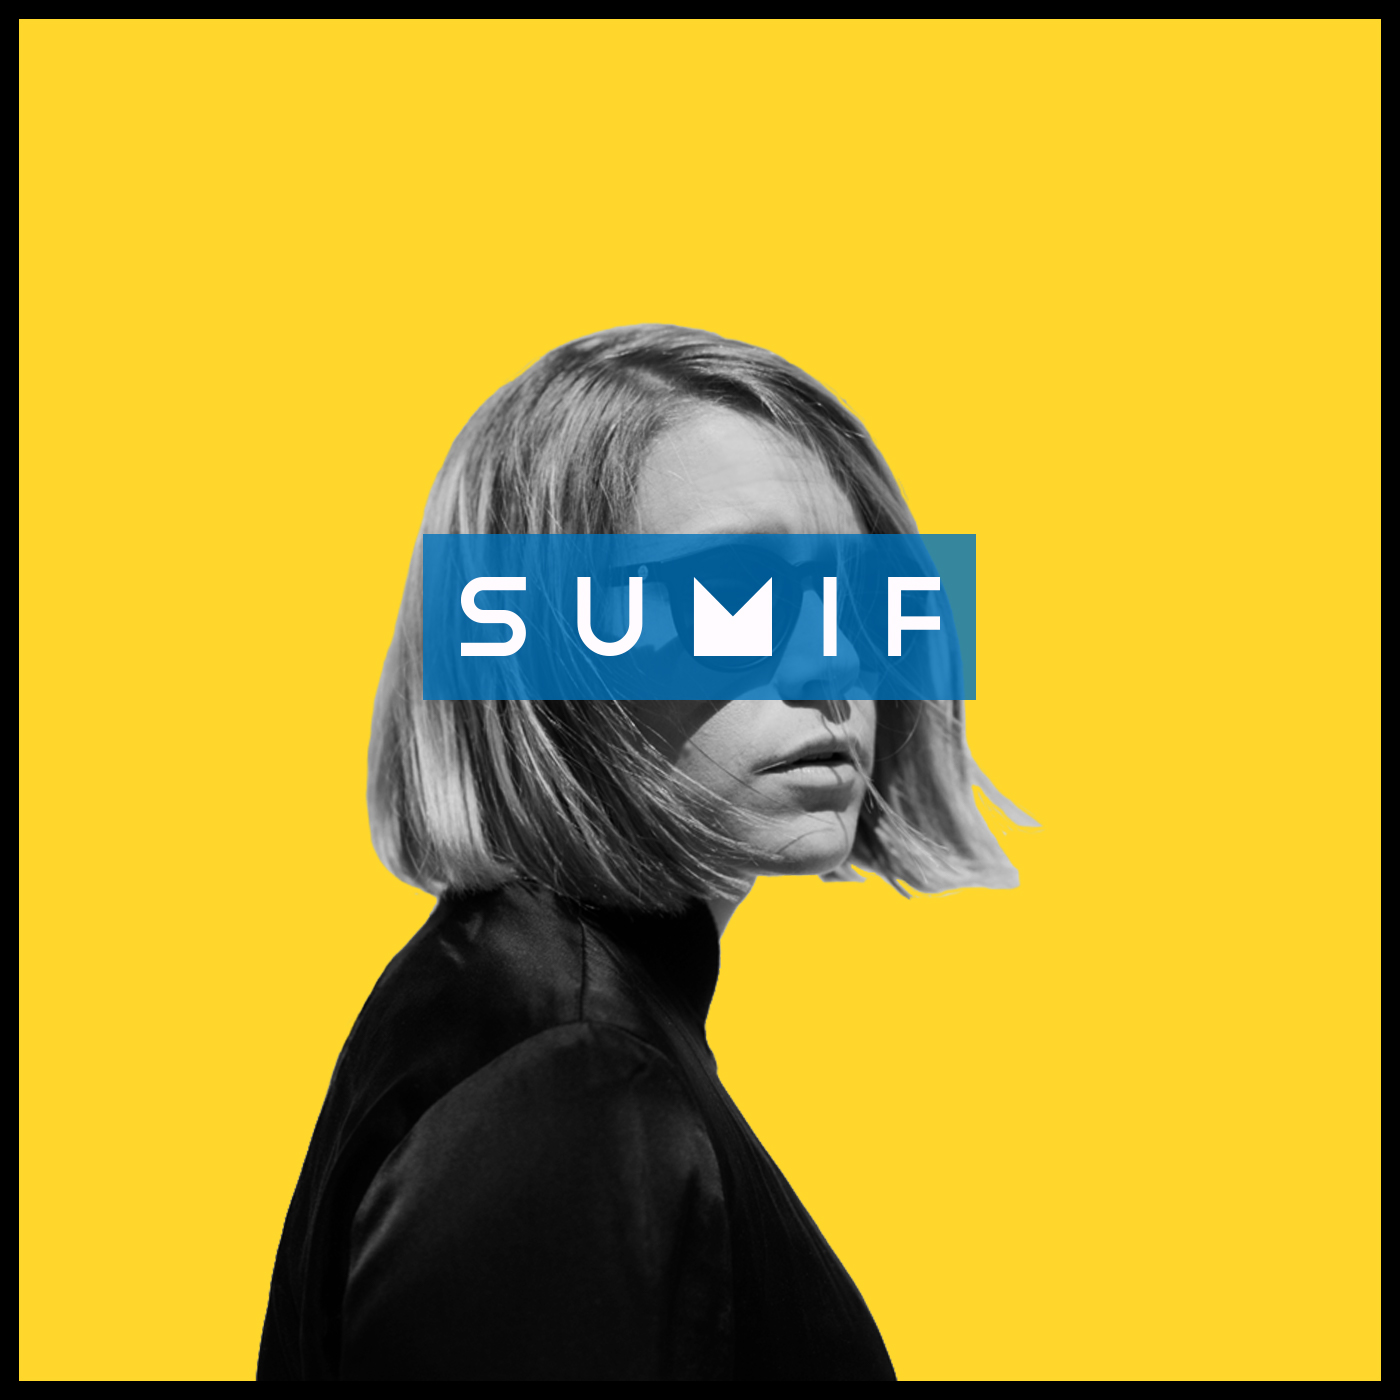 Electronic Pop Artist SUMIF, Album Cover, 2017.